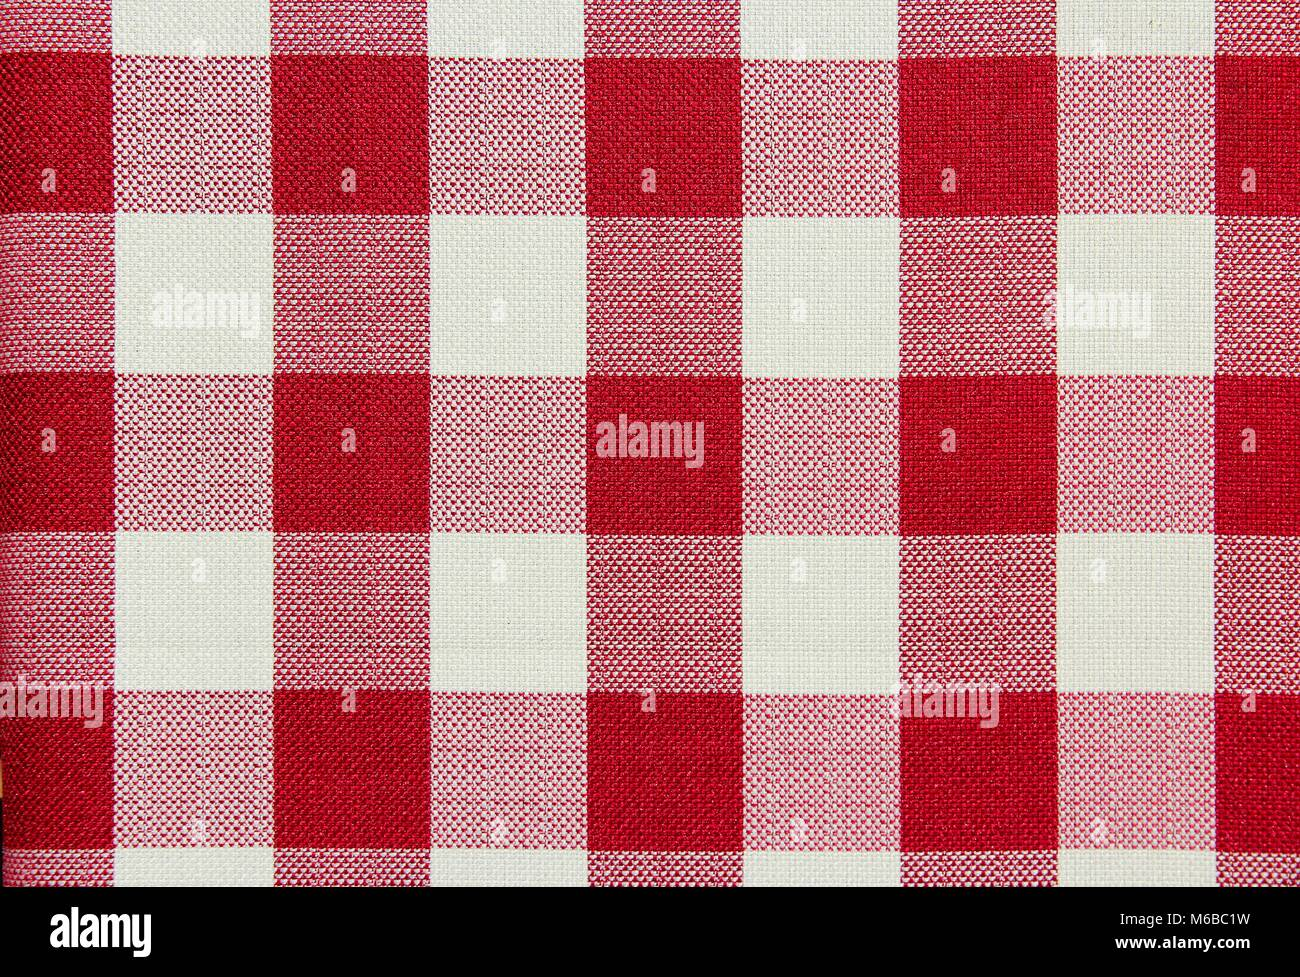 Merveilleux Red And White Checkered Table Cloth Background. Textile Pattern.   Stock  Image